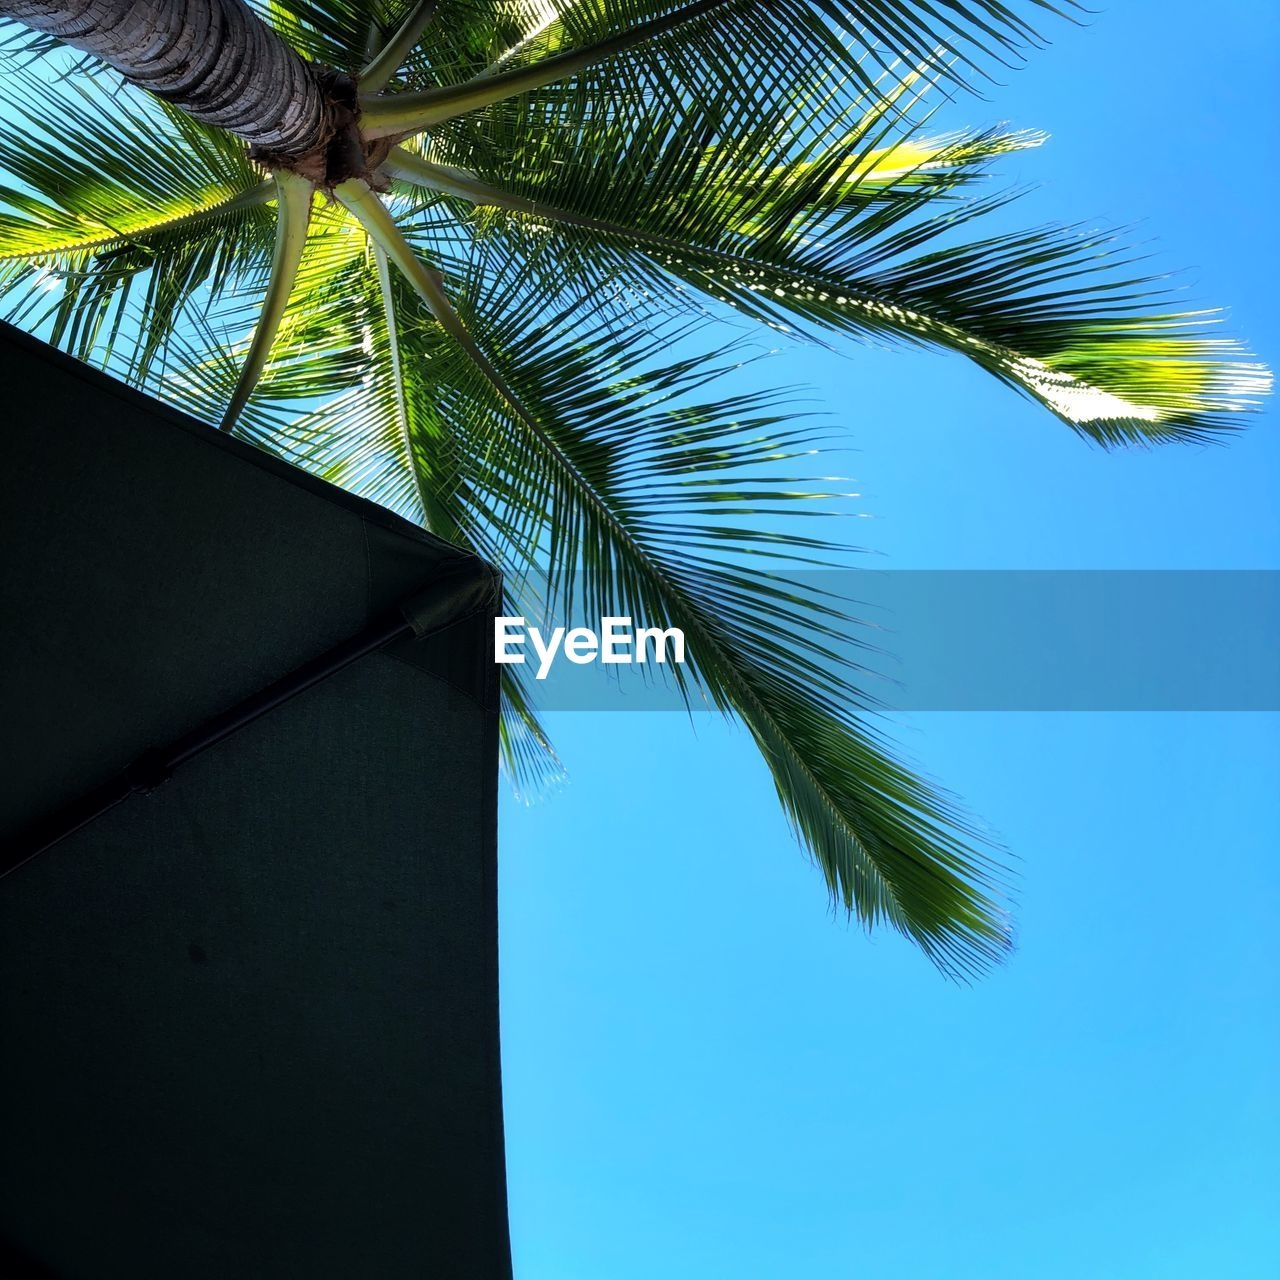 palm tree, leaf, tree, tropical climate, plant, low angle view, palm leaf, growth, sky, nature, no people, plant part, blue, green color, beauty in nature, day, clear sky, coconut palm tree, outdoors, close-up, tropical tree, directly below